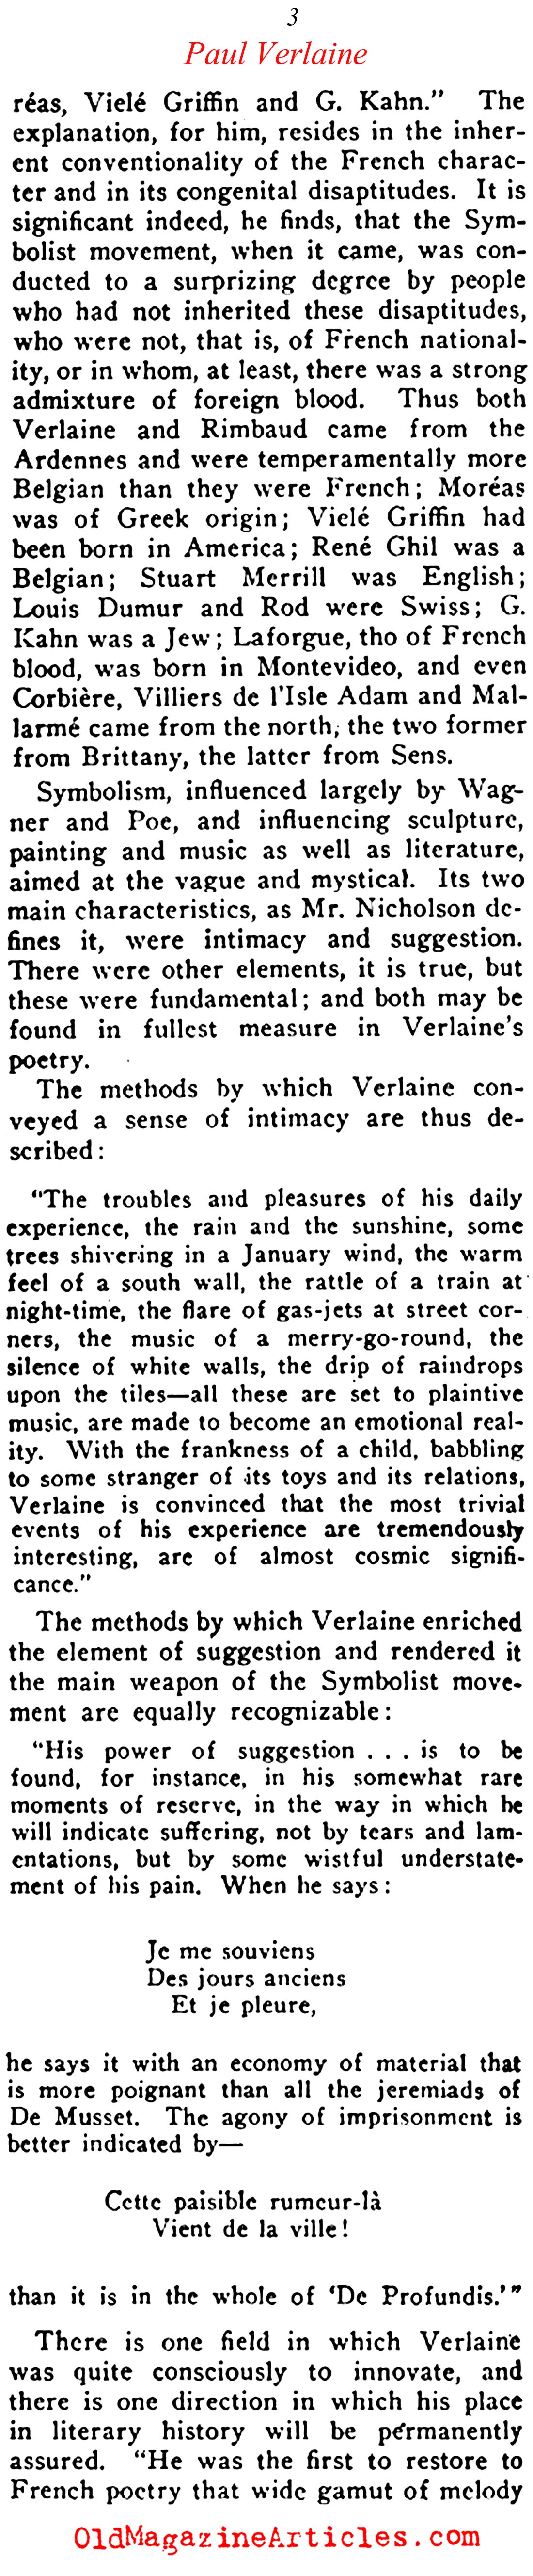 Harold Nicolson on Paul Verlaine (Current Opinion, 1921)